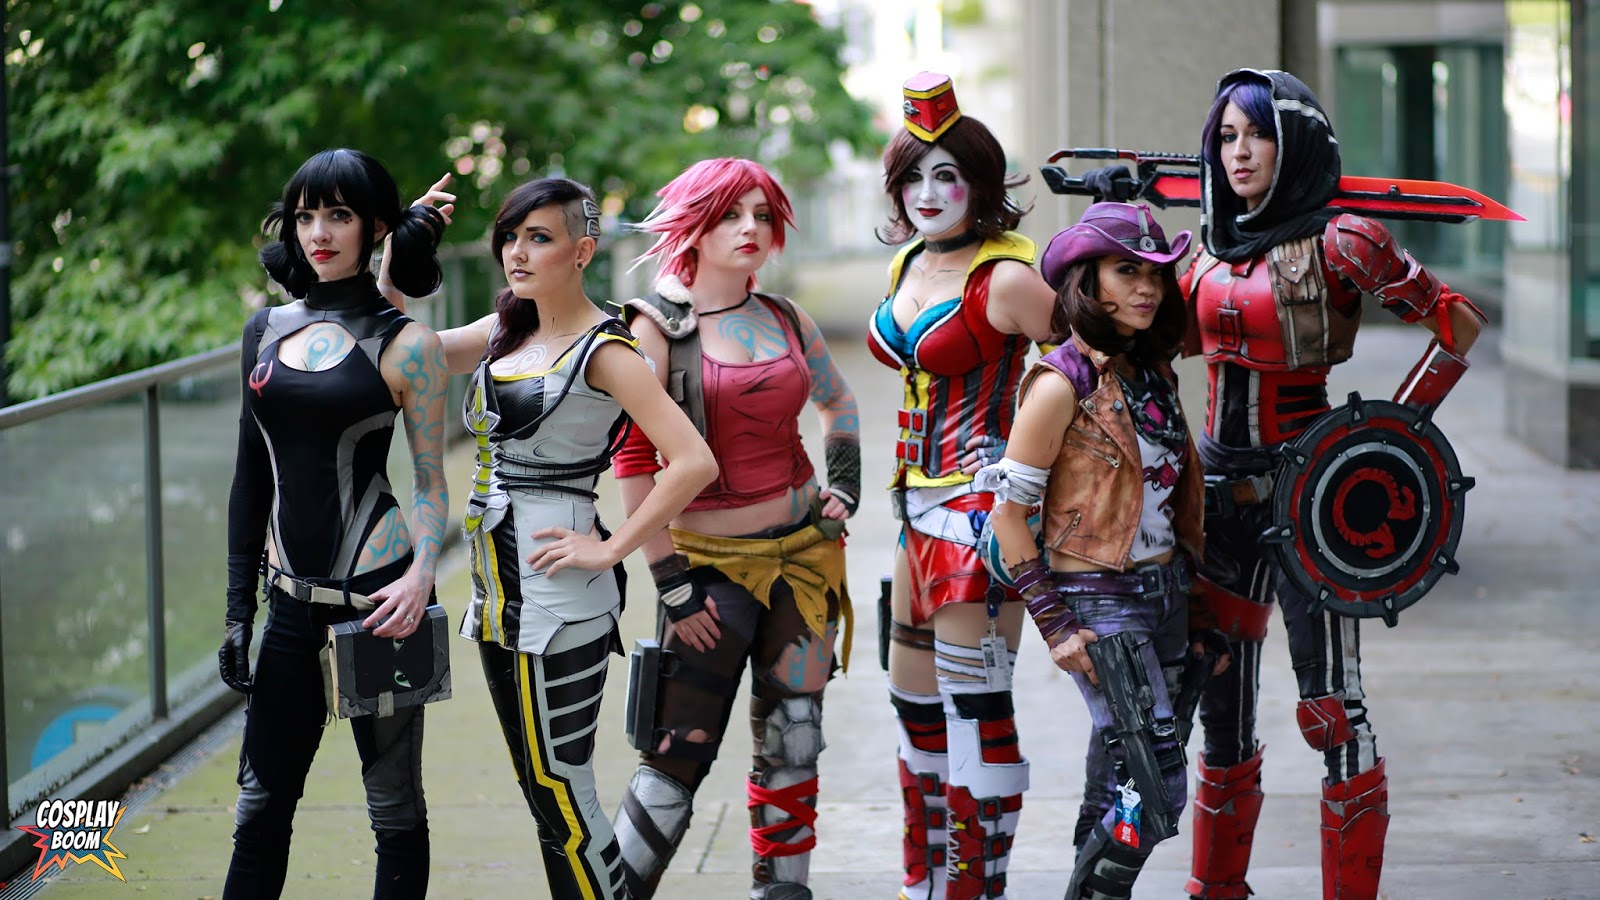 Top 10 Best Cosplay Costumes  sc 1 st  Creative Cosplay Designs & Top 10 Best Cosplay Costumes - Creative Cosplay Designs